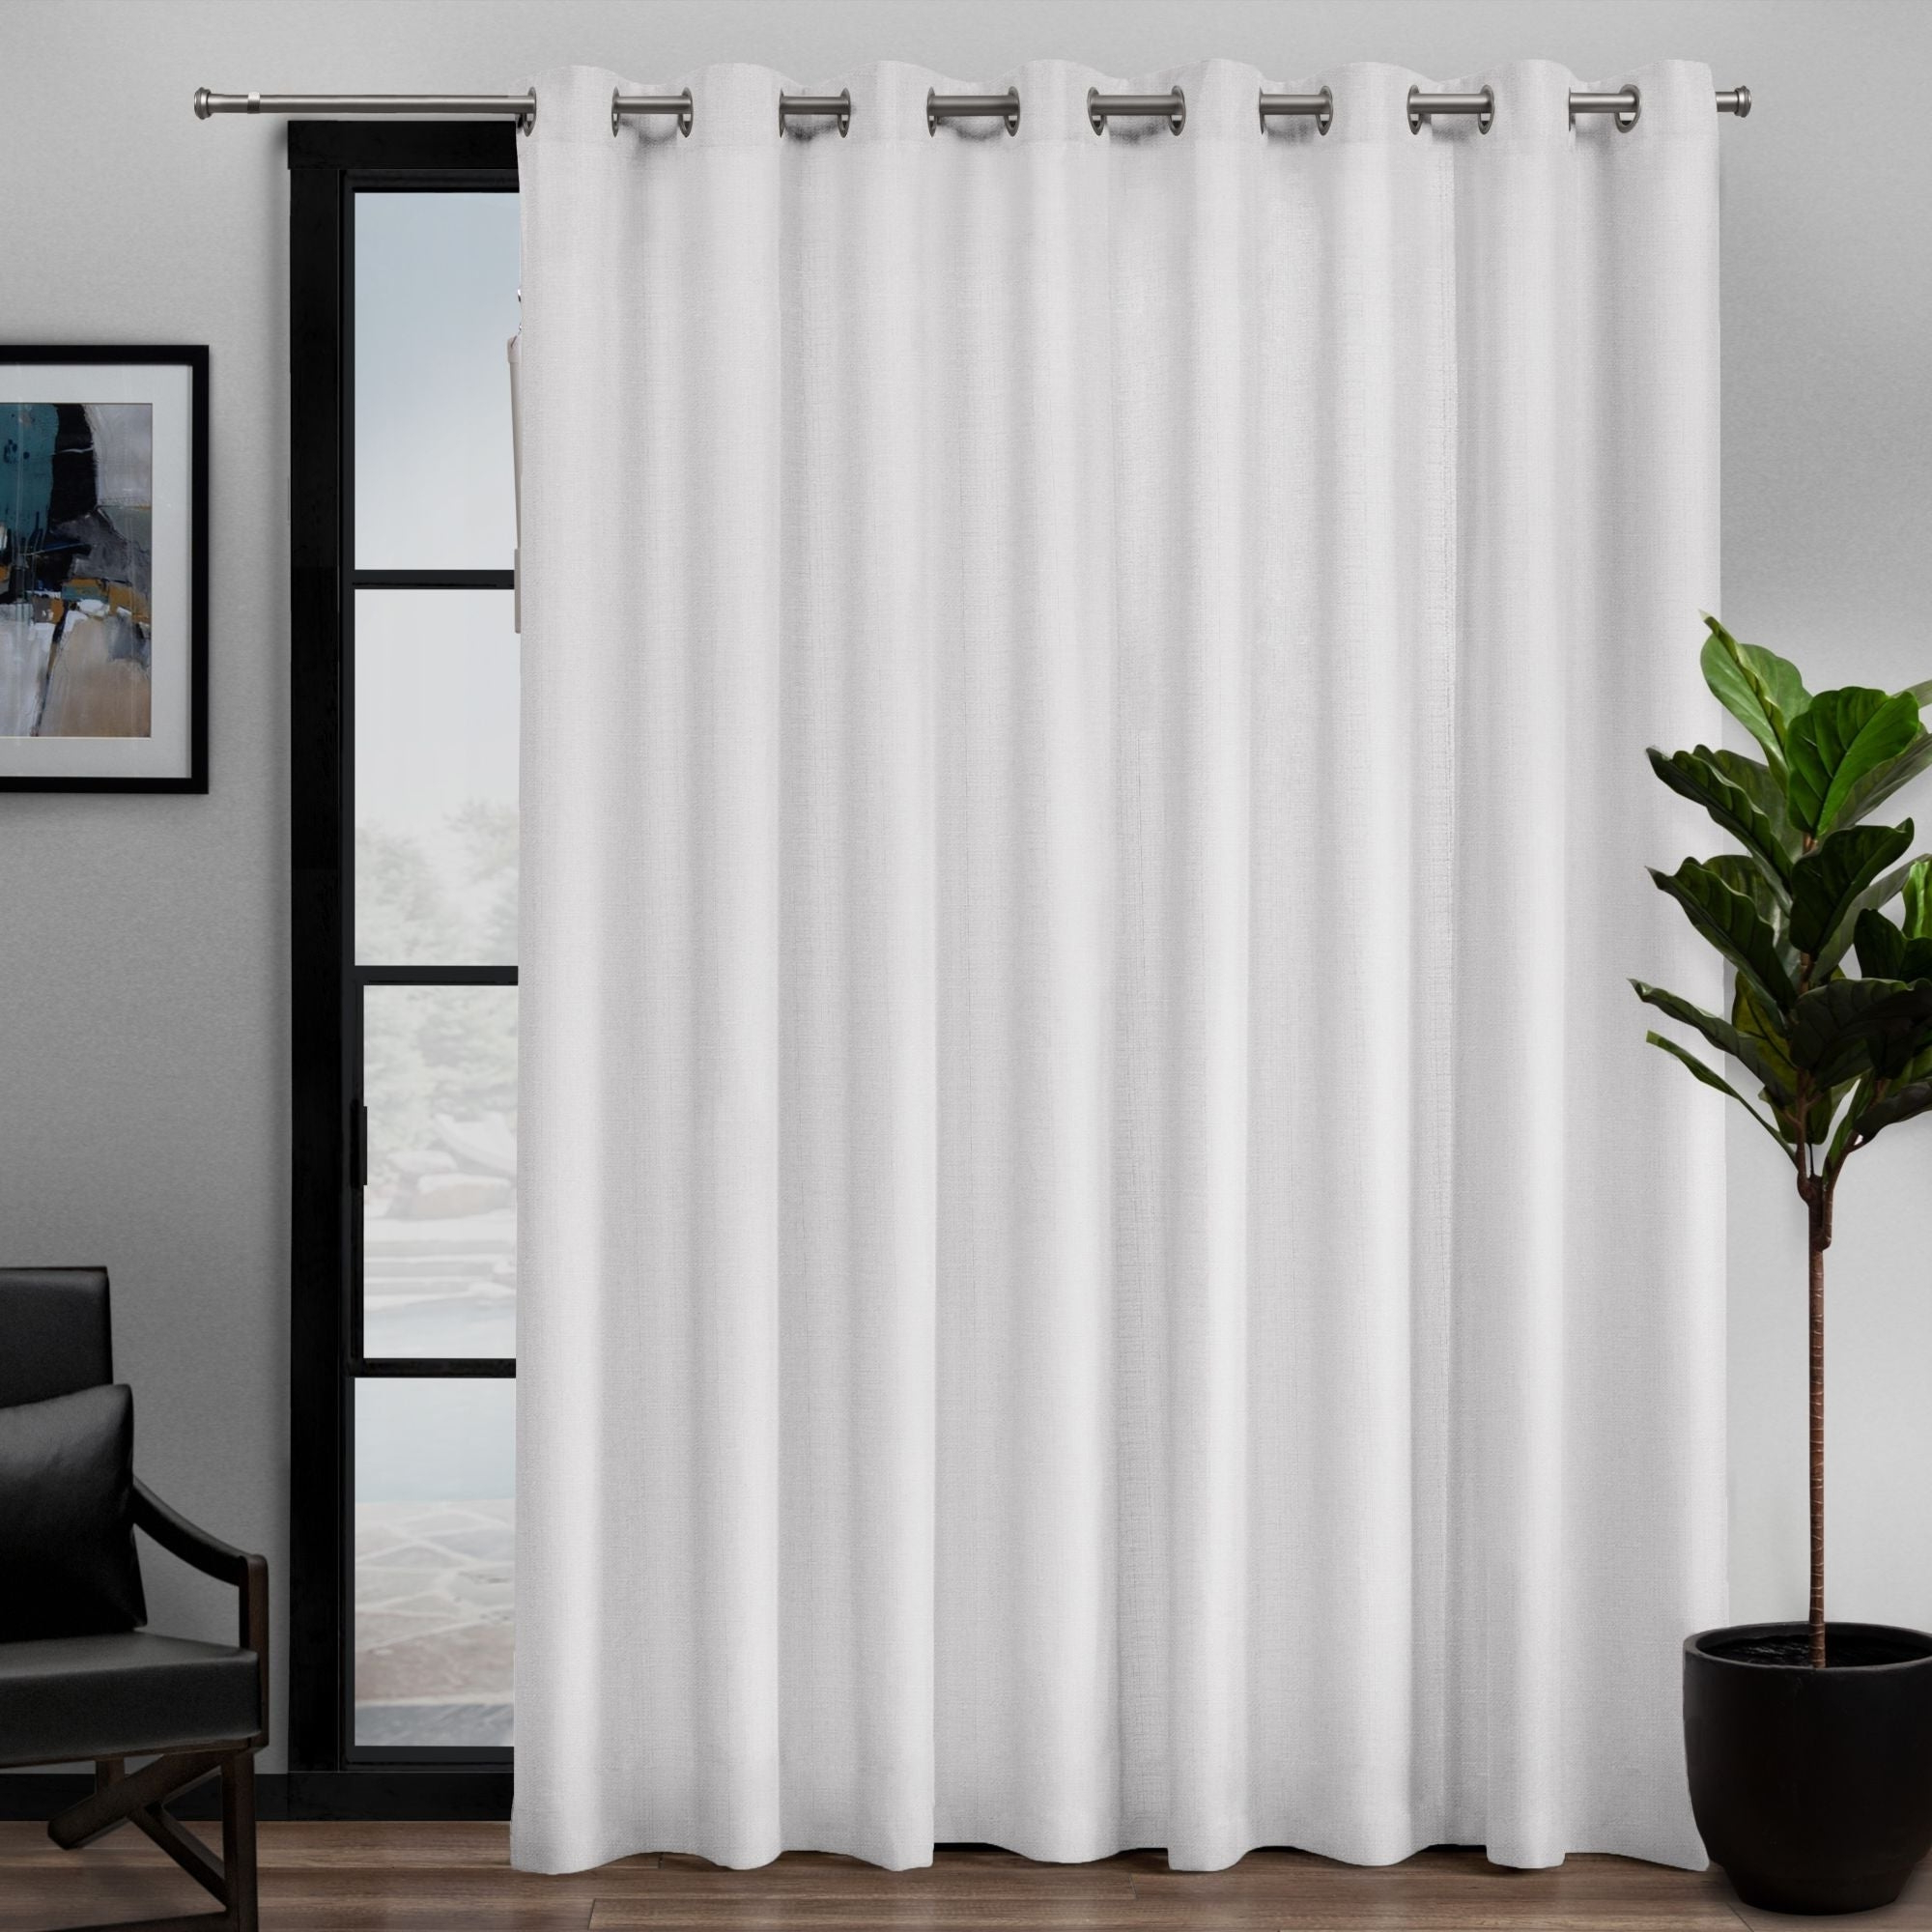 Ati Home Loha Patio Grommet Top Single Curtain Panel – 108x84 Throughout Most Current Patio Grommet Top Single Curtain Panels (View 2 of 20)